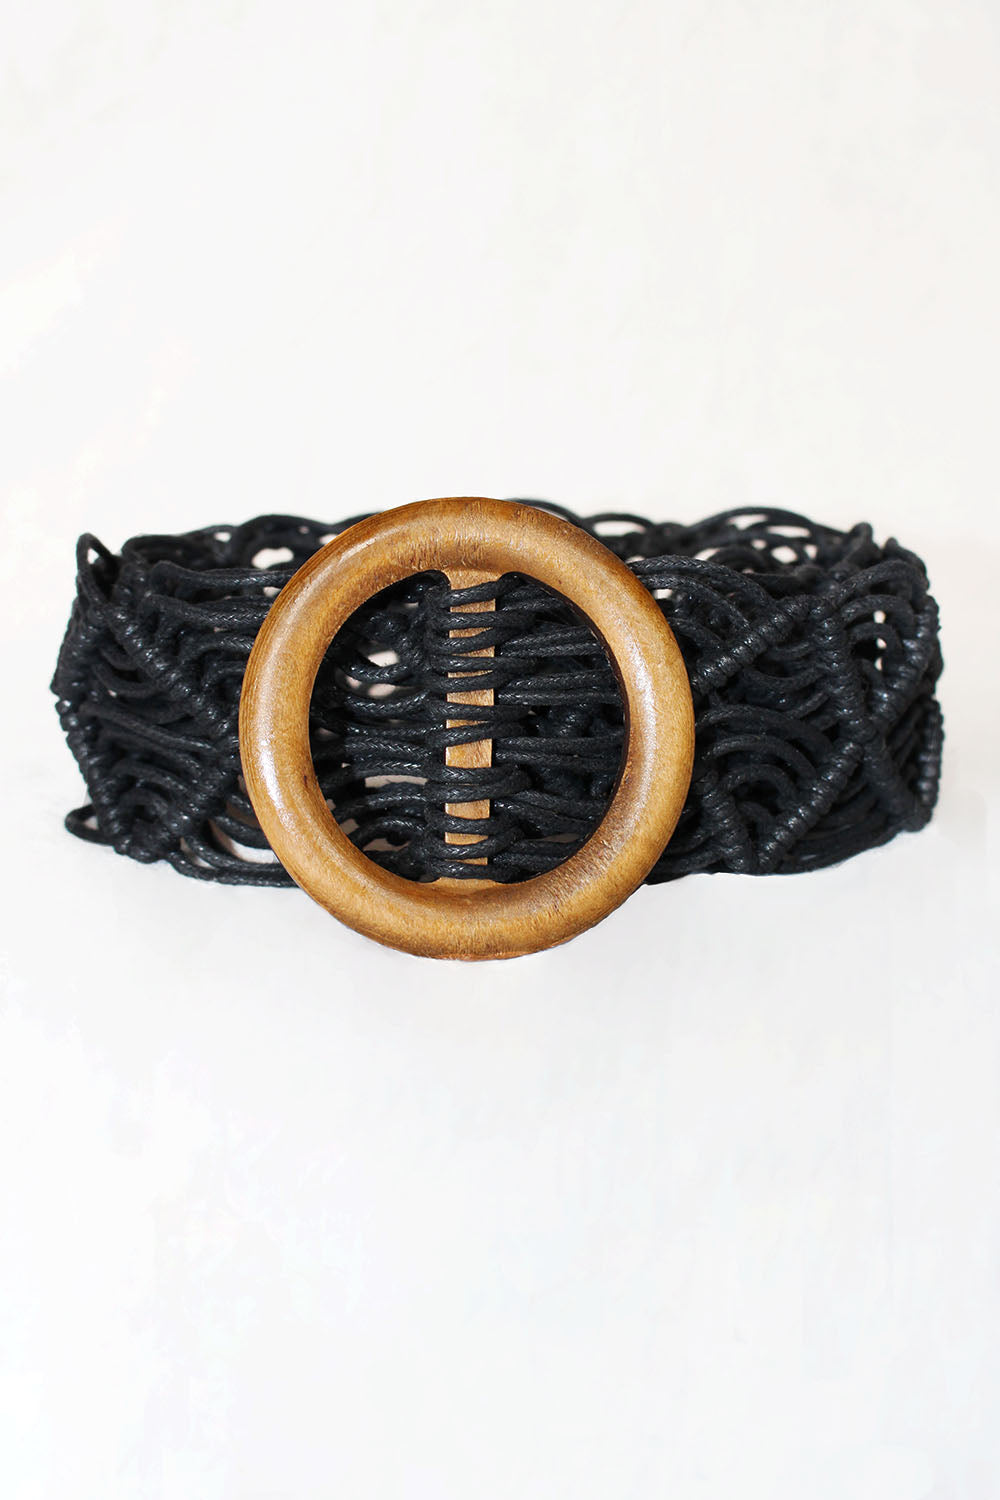 Woven Rope Belt with Wooden Buckle